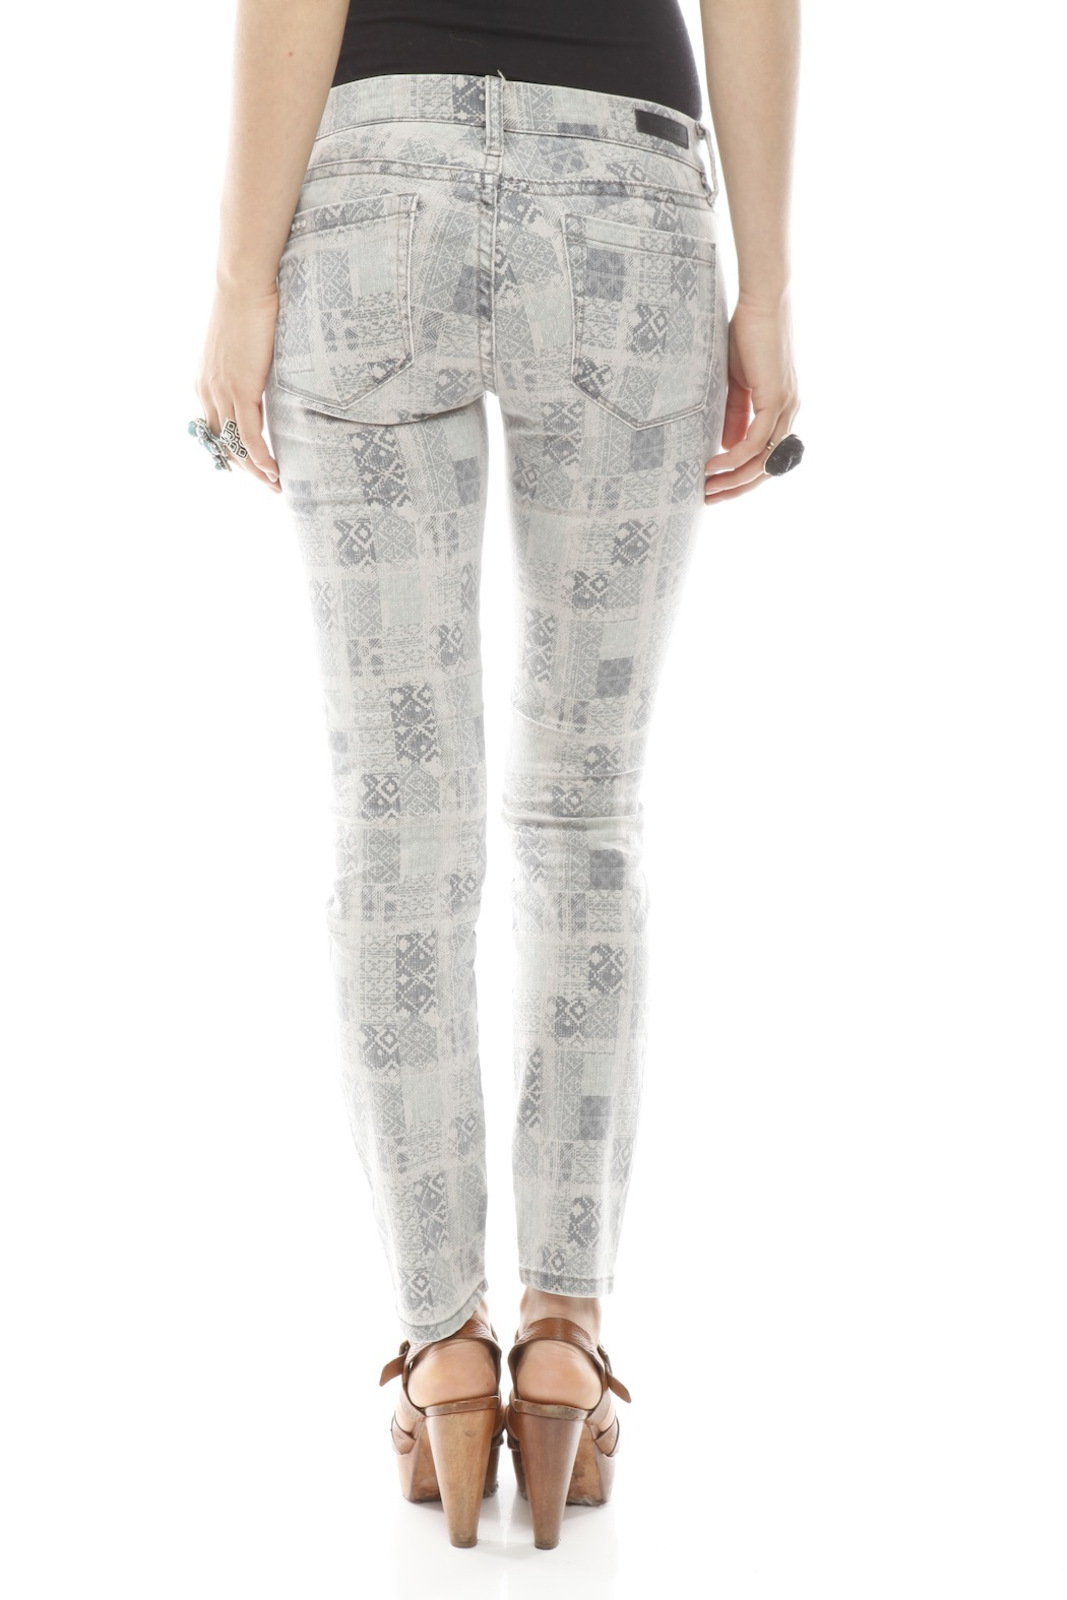 BlankNYC Ankle Moroccan Jeans - Back Cropped Image